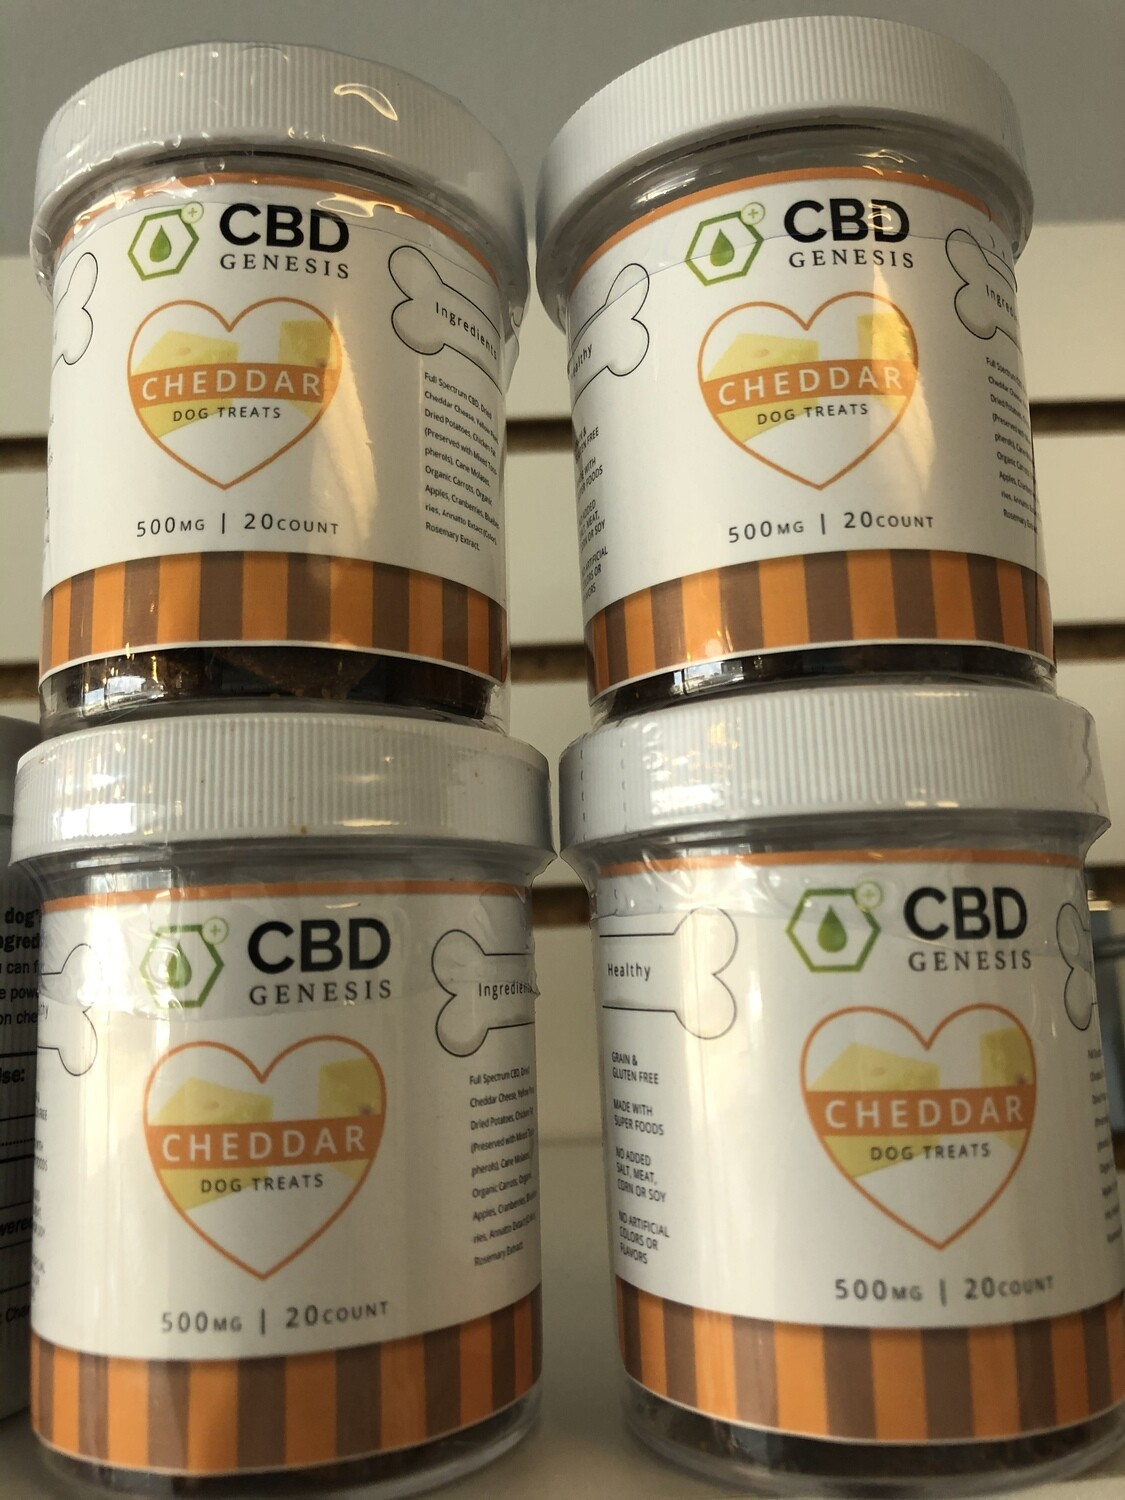 CBD Genesis Dog Treats